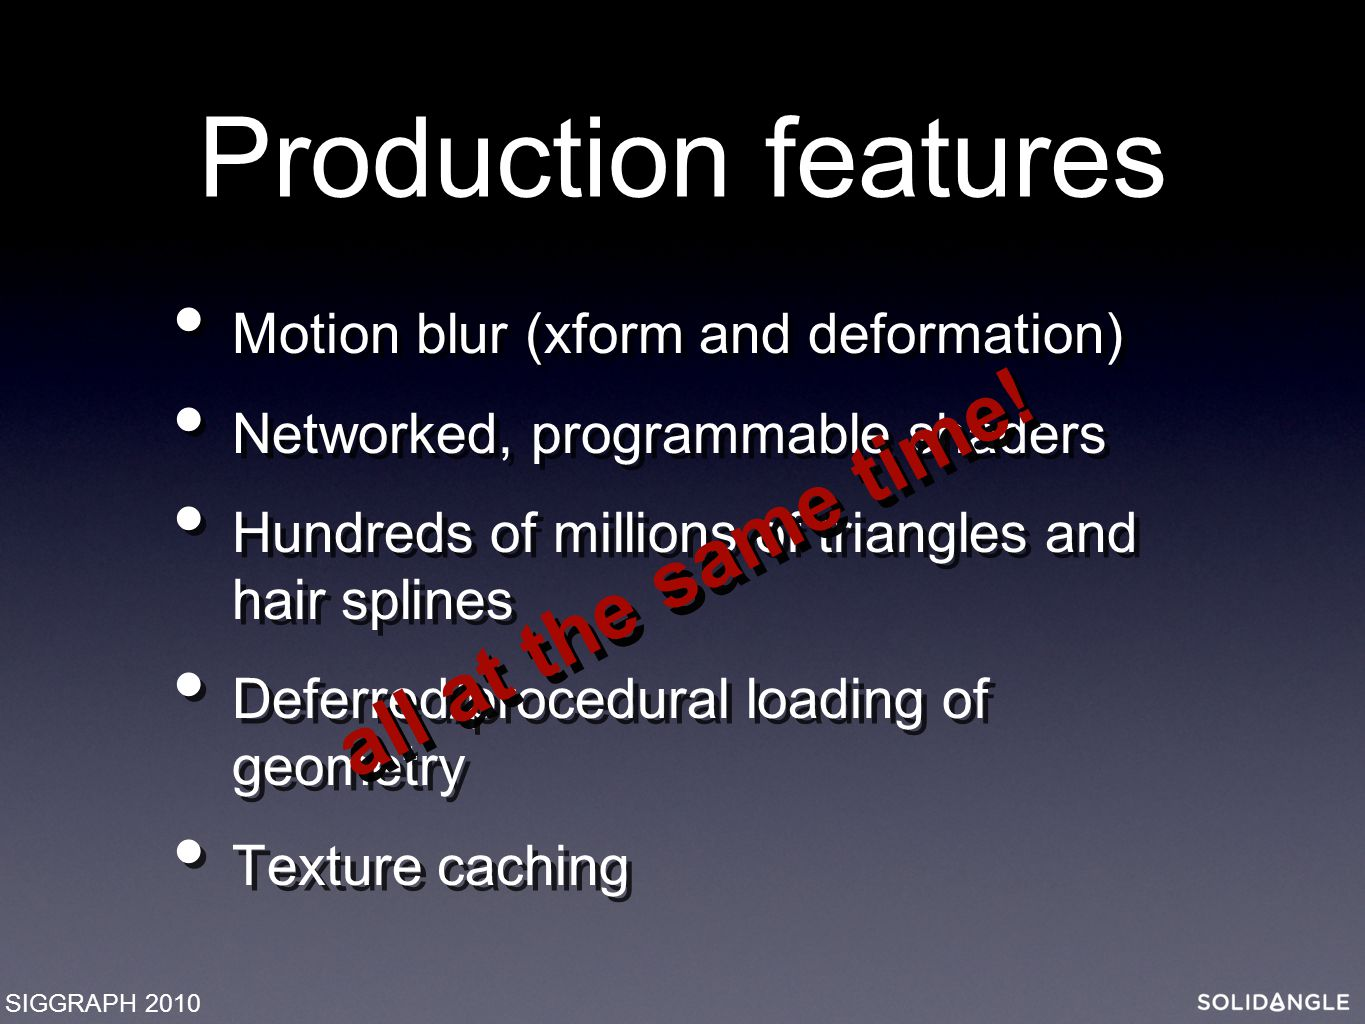 Production features Motion blur (xform and deformation) Networked, programmable shaders Hundreds of millions of triangles and hair splines Deferred/procedural loading of geometry Texture caching Motion blur (xform and deformation) Networked, programmable shaders Hundreds of millions of triangles and hair splines Deferred/procedural loading of geometry Texture caching SIGGRAPH 2010 all at the same time!